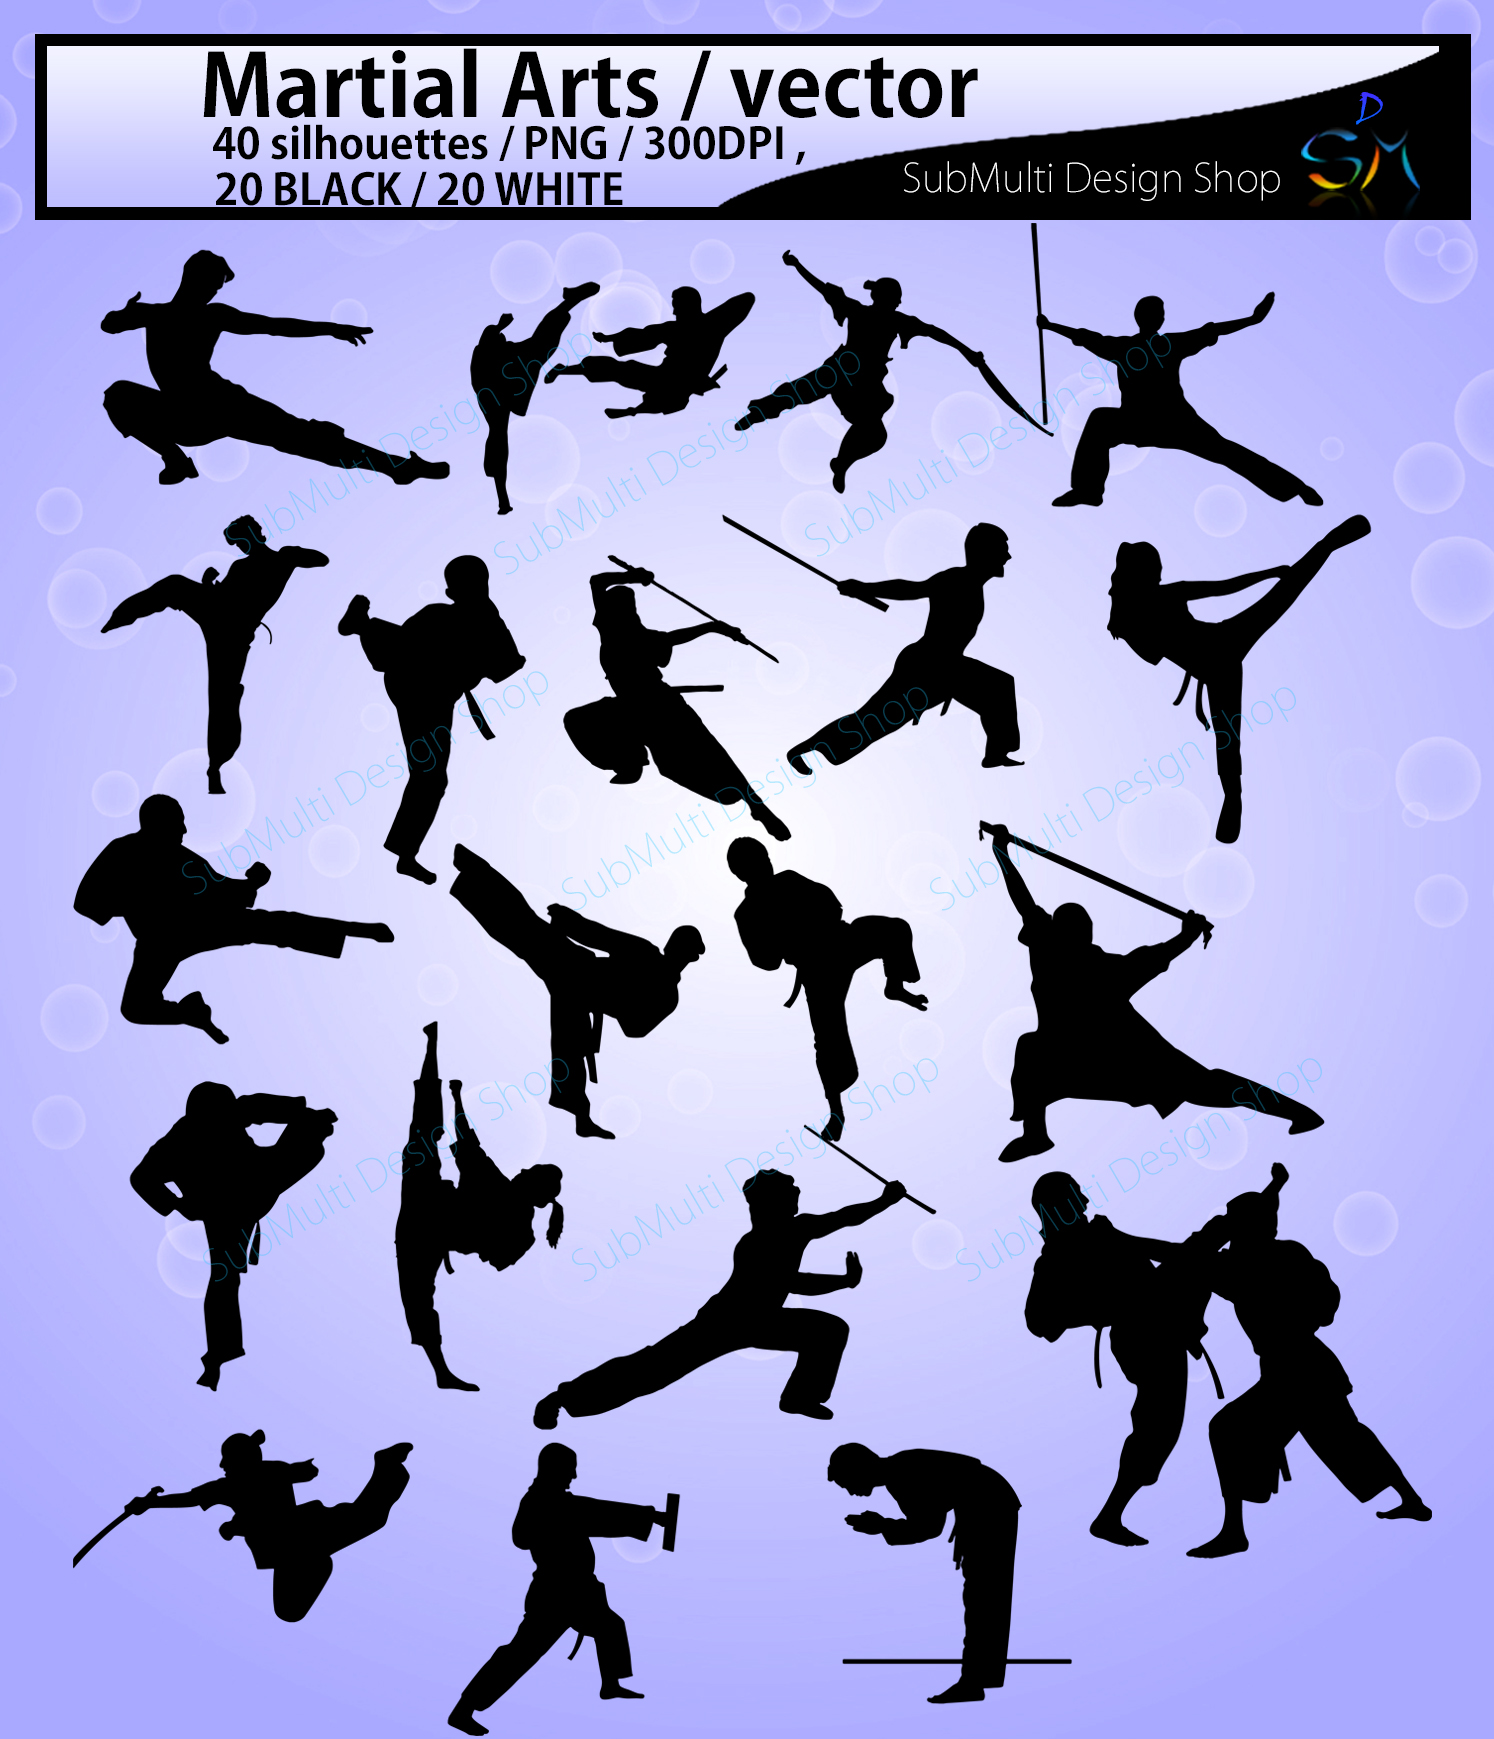 Martial arts SVG / High Quality /Martial art silhouette / Martial arts cliparts / karate silhouette/ silhouette /300 DPI / EPS / PNg/ DXf example image 2